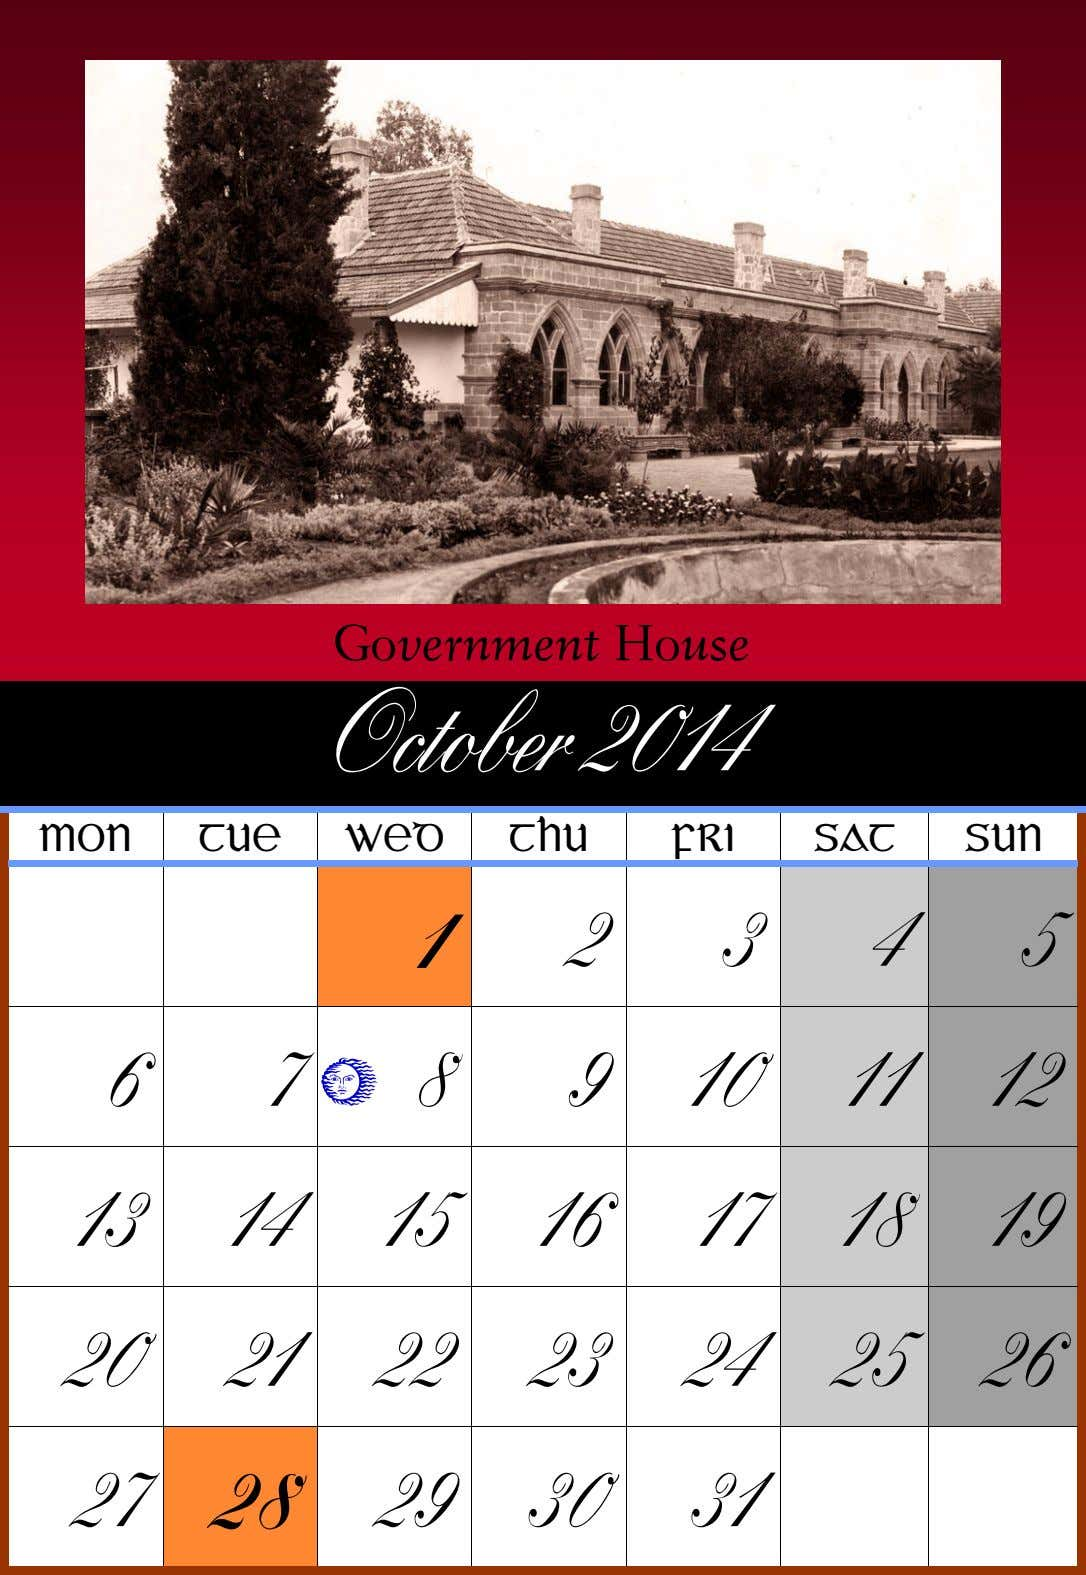 Government House October 2014 MON TUE WED THU FRI SAT SUN 1 2 3 4